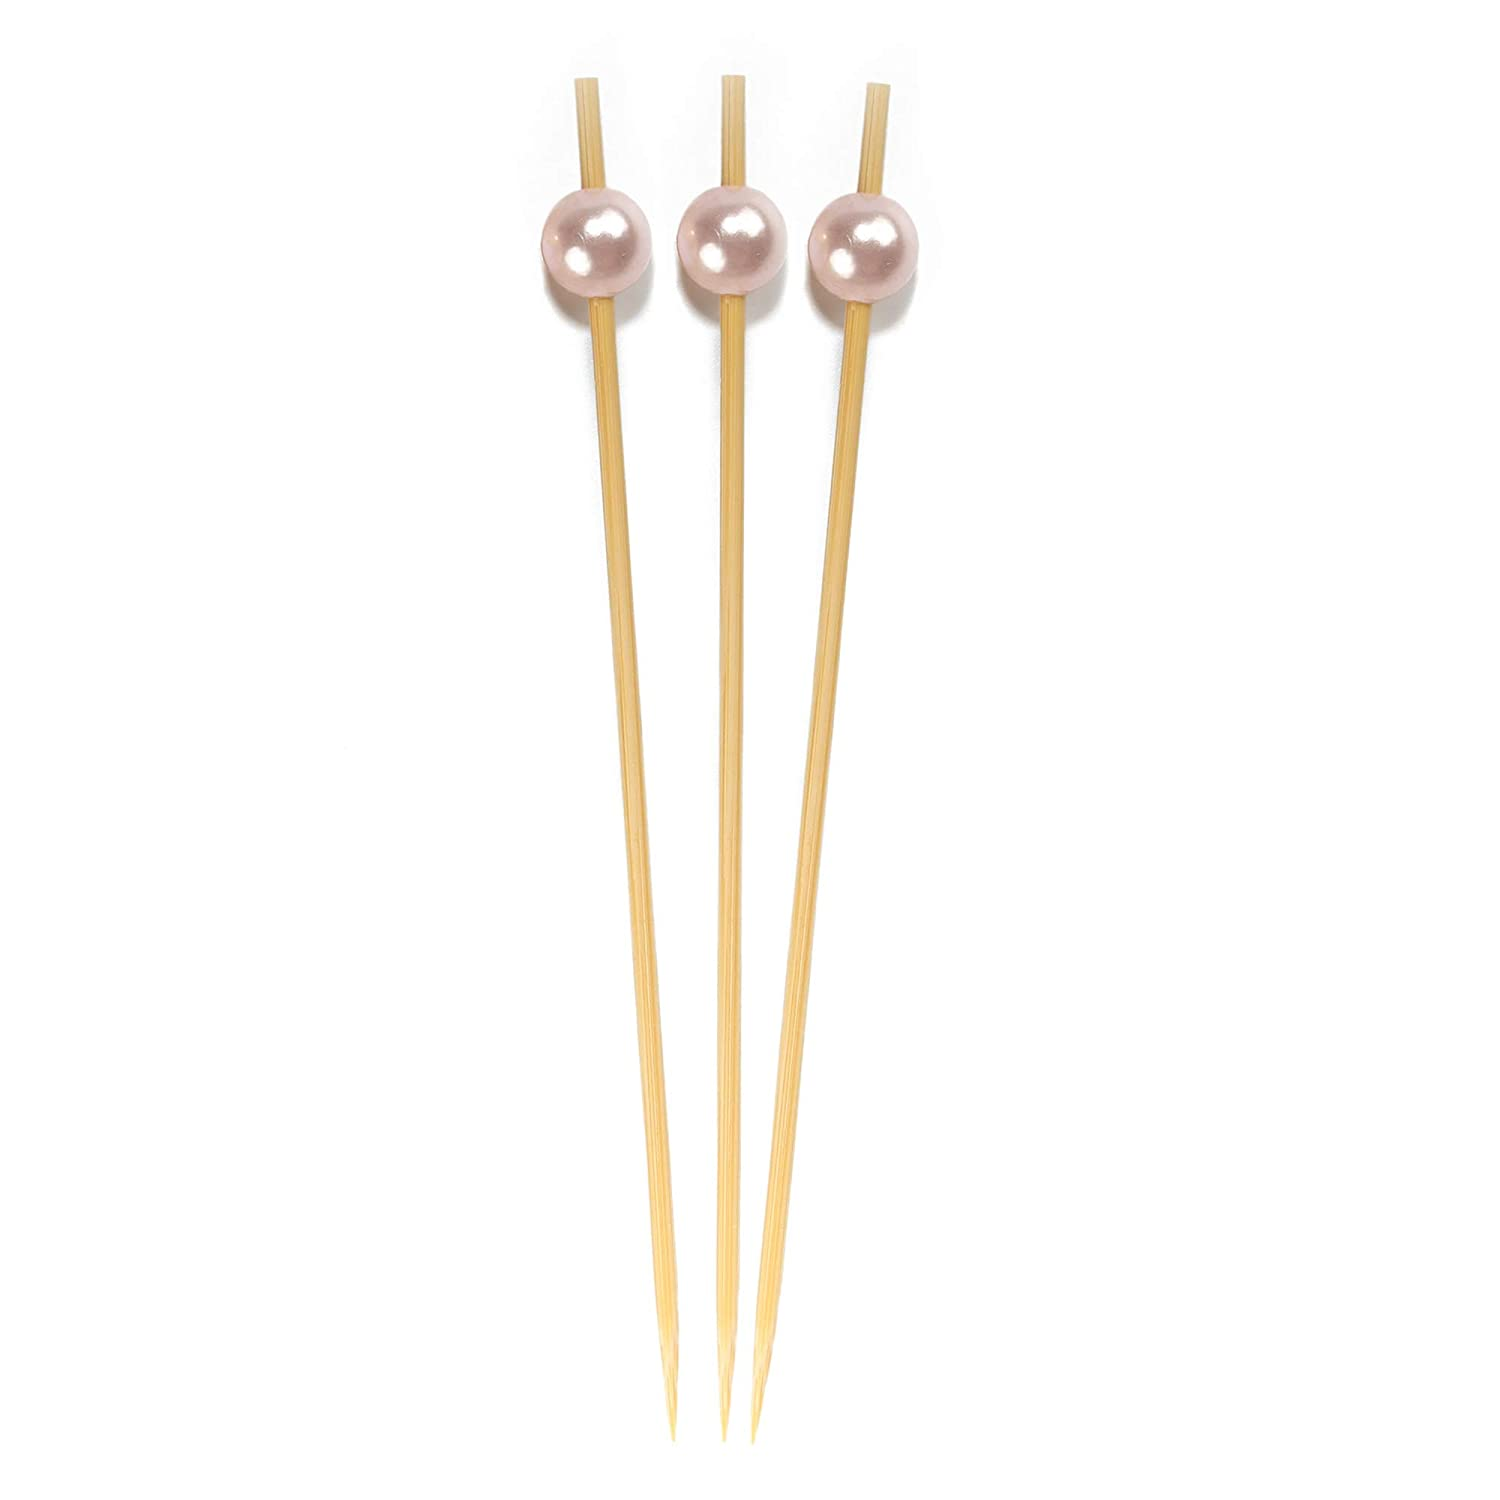 Restaurants Buffets Party Supplies 1000pcs Holiday/'s 6955114946529a Grey, Pink, White Holidays BambooMN 5.9 Decorative Pearl End Cocktail Fruit Sandwich Picks Skewers Catered Events Assort 95